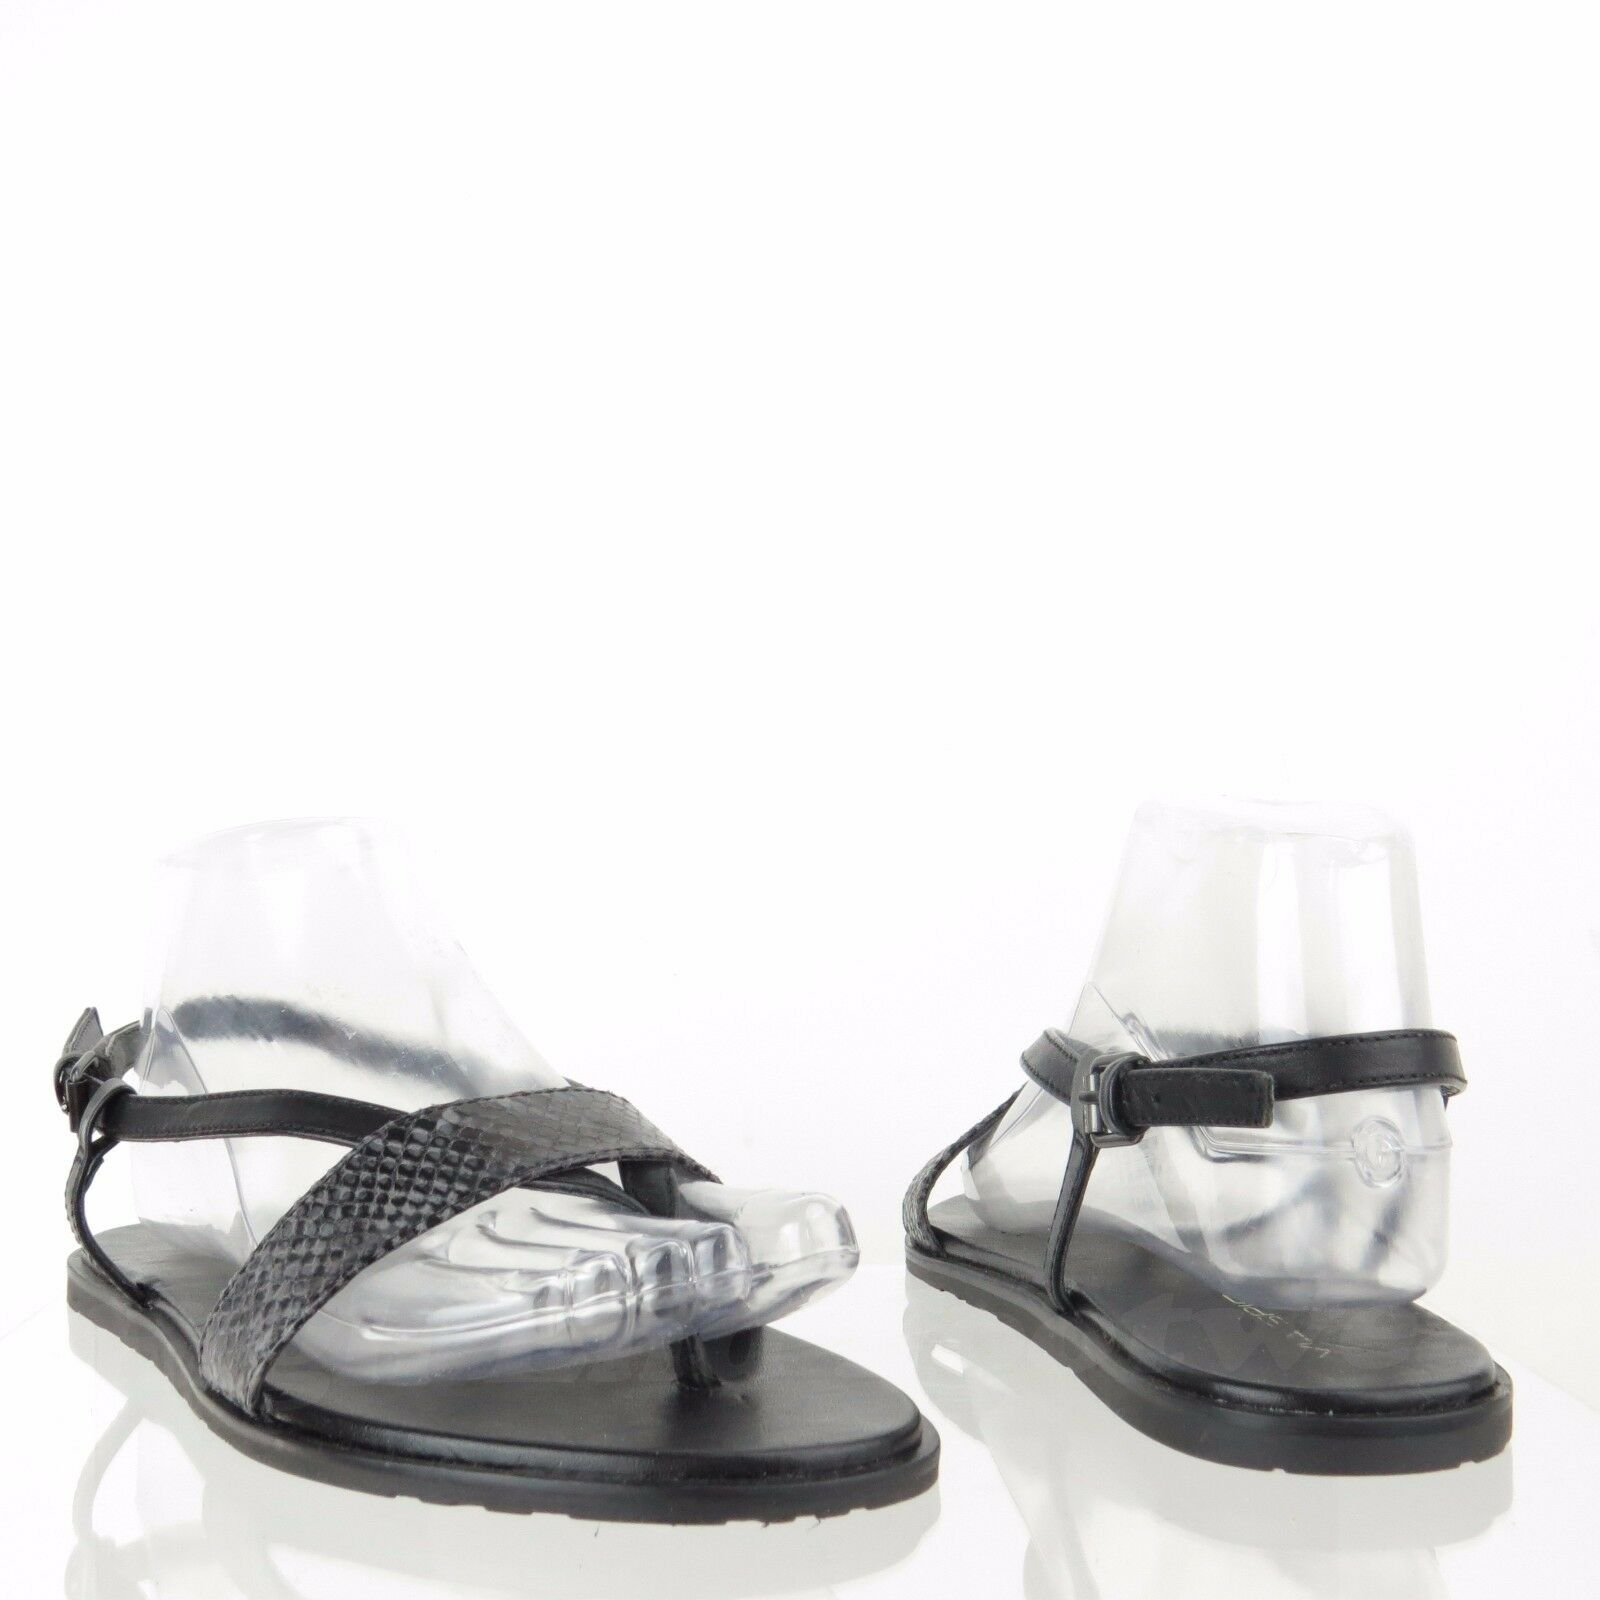 Via Spiga Alena Women's shoes Black Leather Snakeprint Thong Sandals Sz 8 M NEW